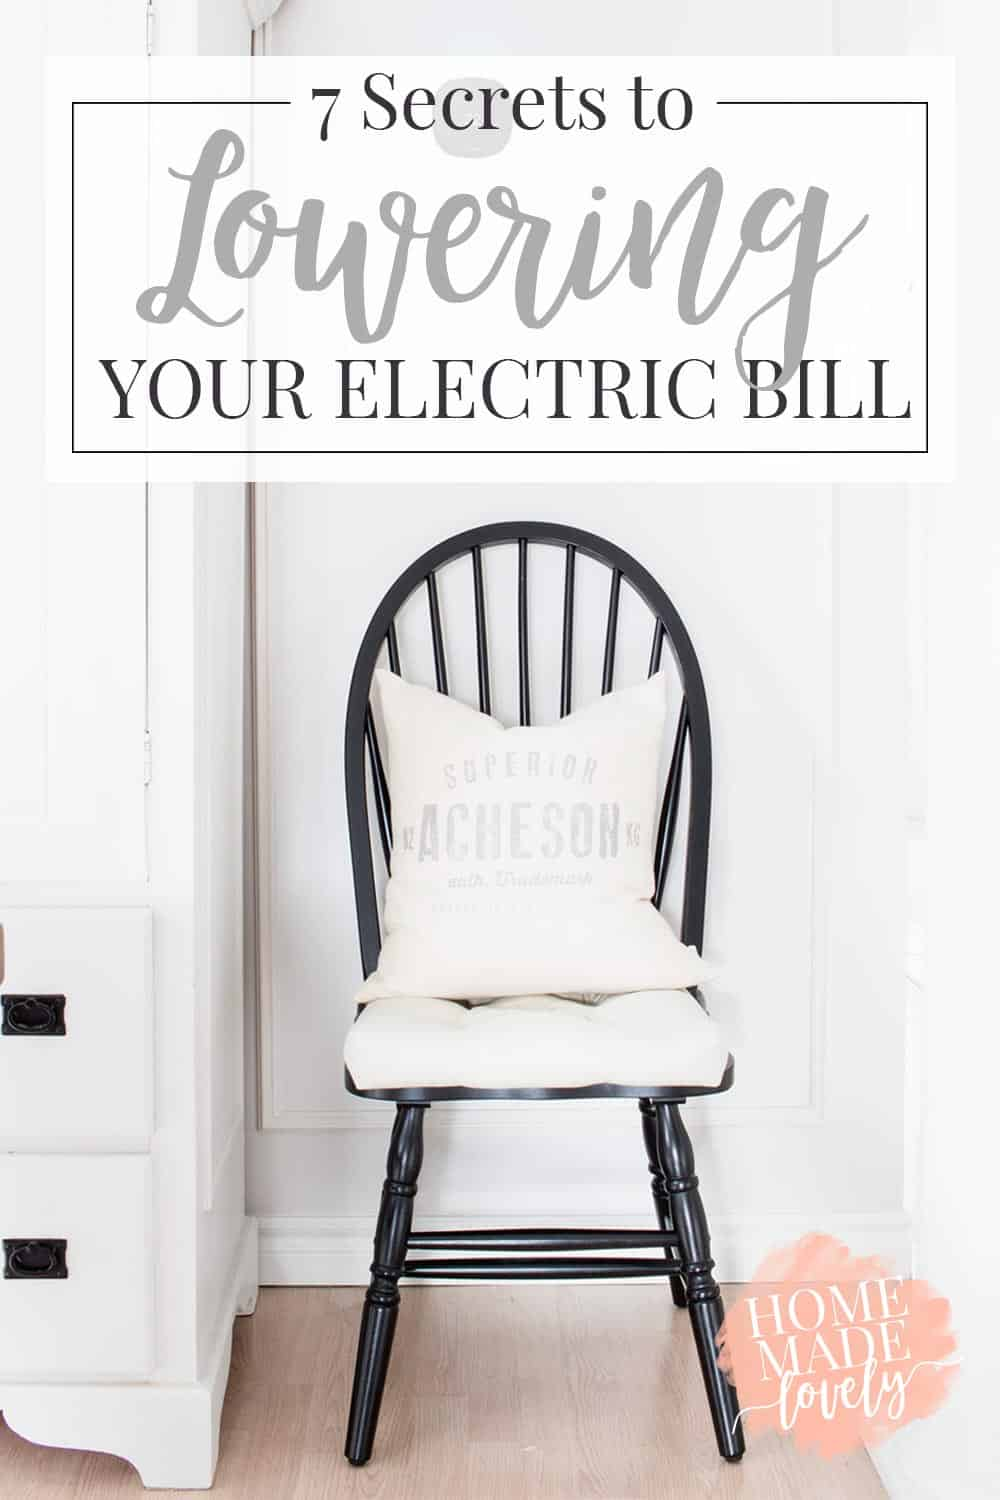 7 Secrets for lowering your electric bill